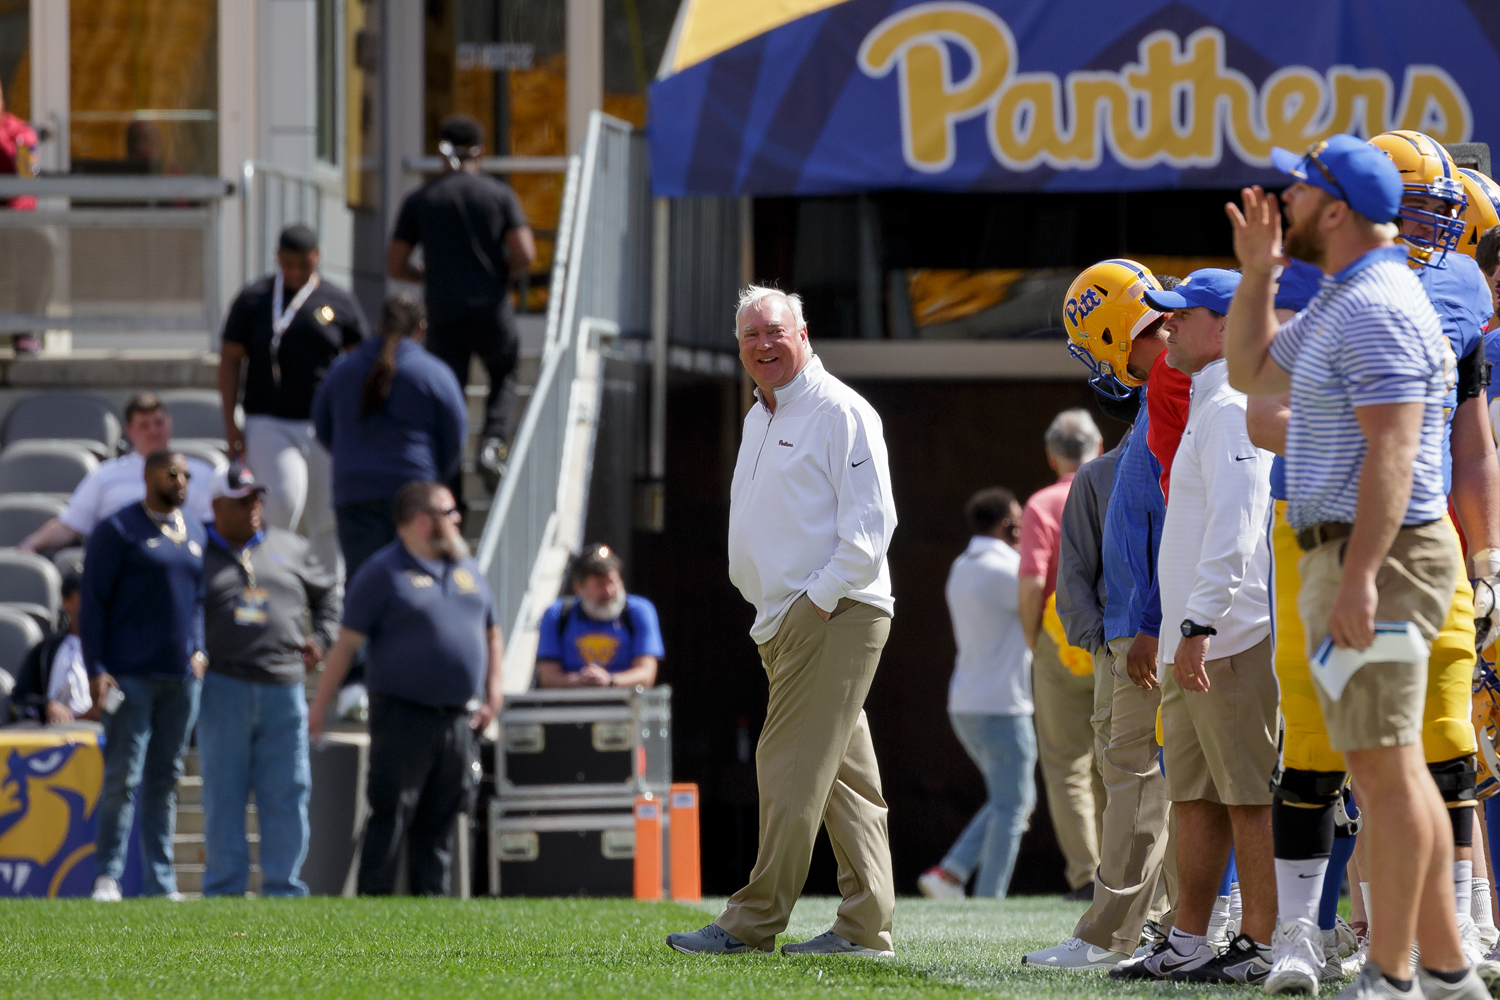 Pitt football offensive coordinator Mark Whipple on the sideline at the team's annual Spring Game.